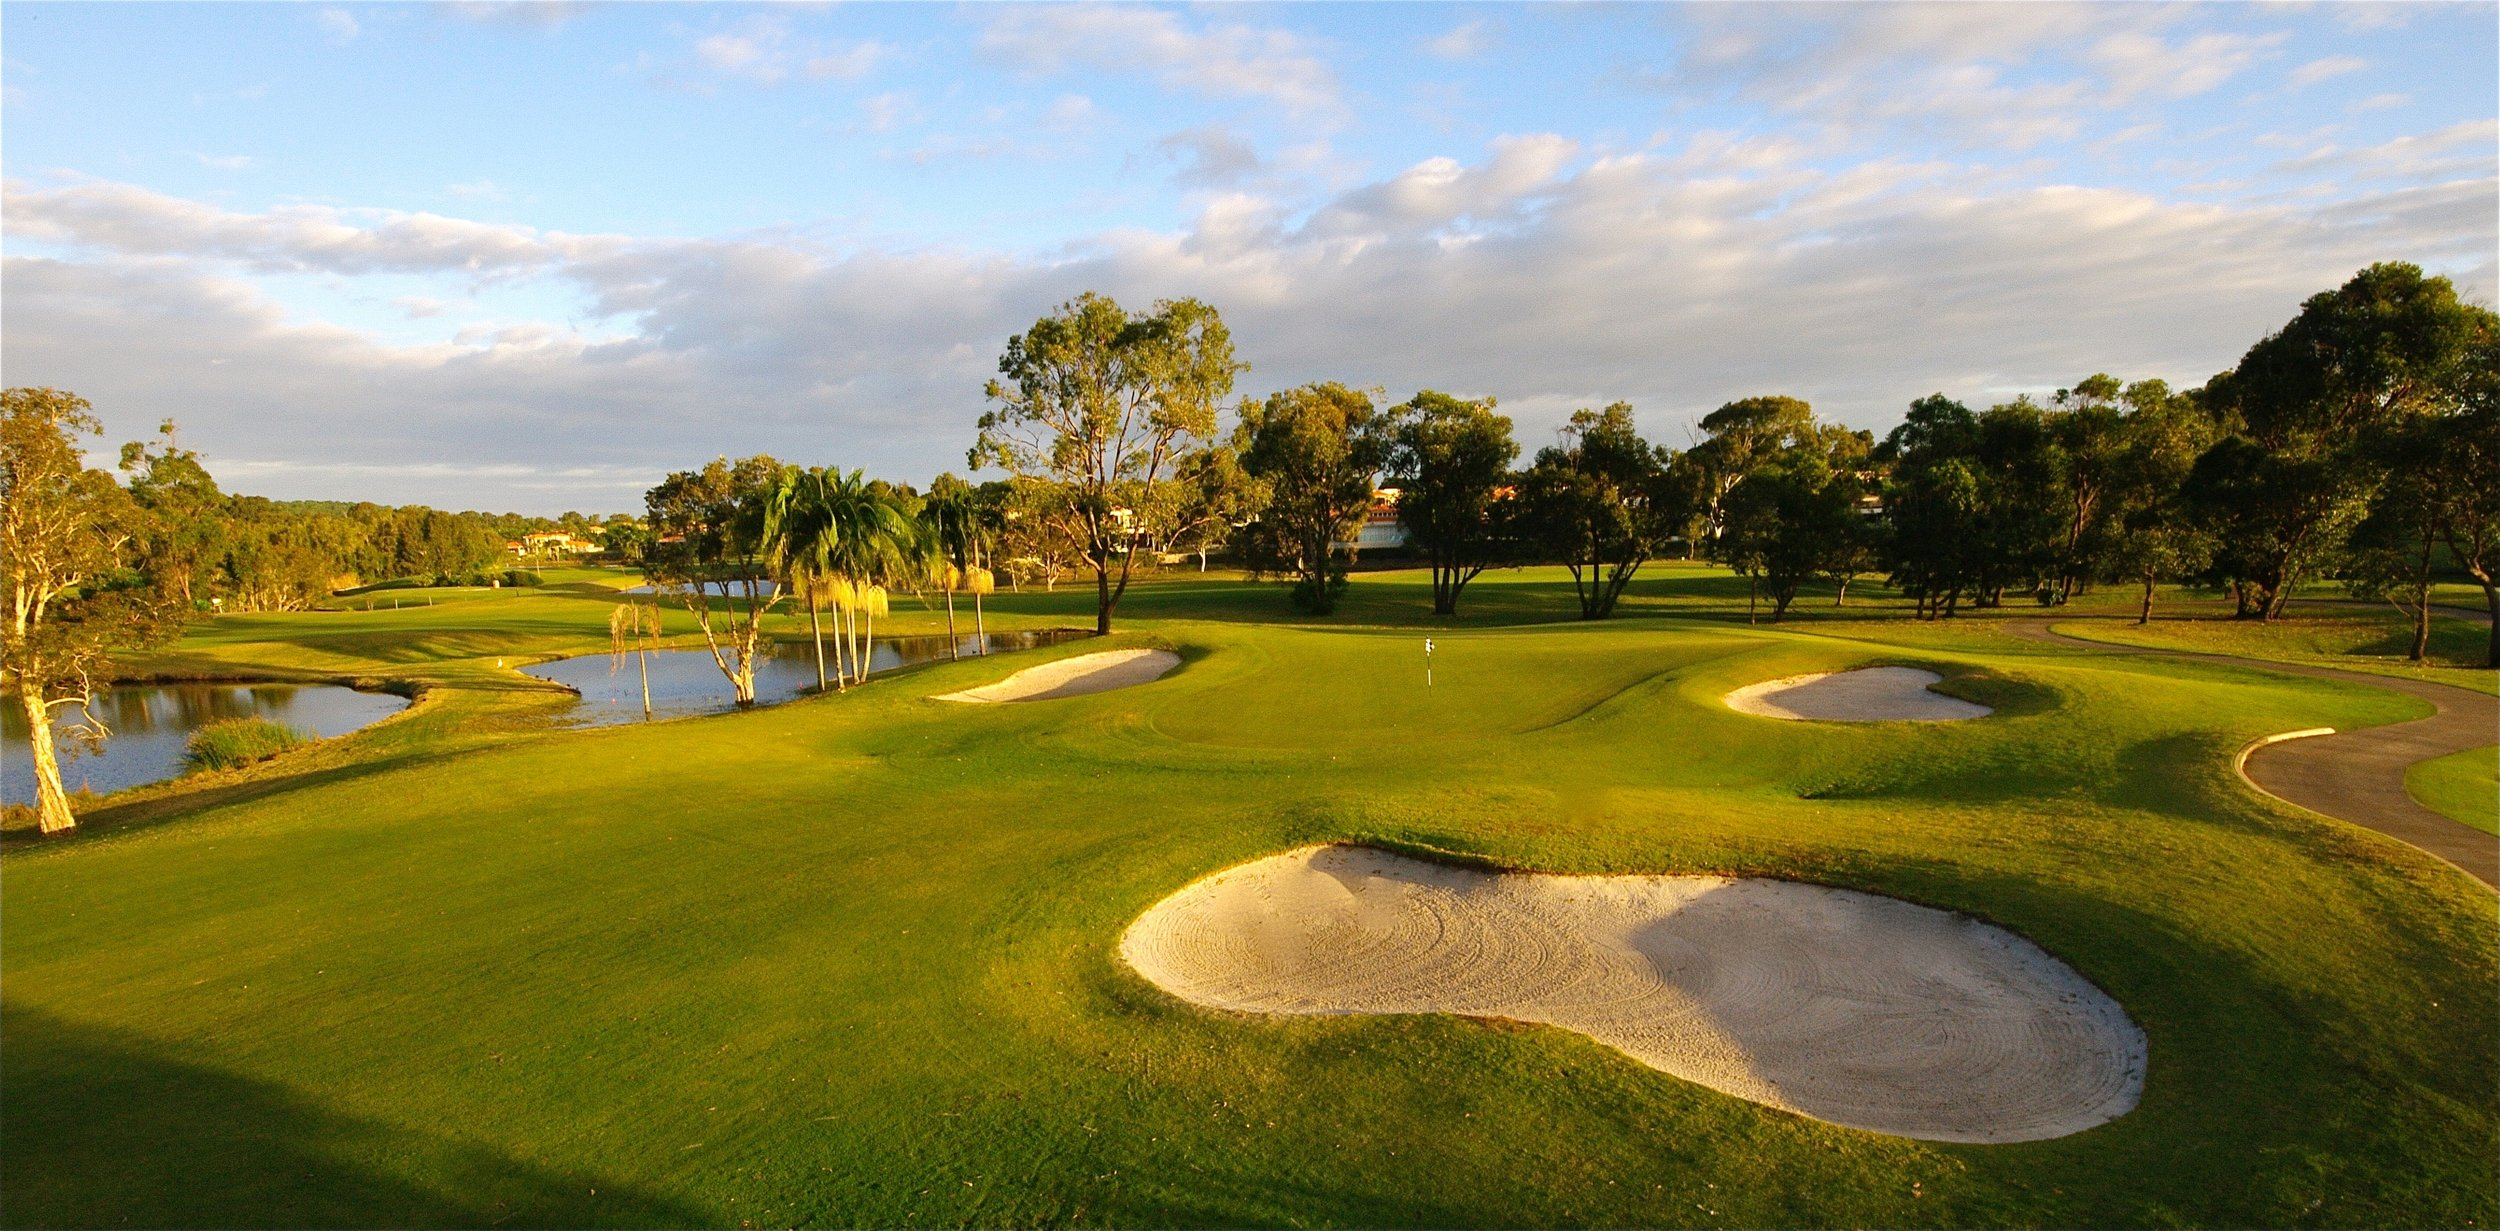 You could be playing noosa springs in july next year!